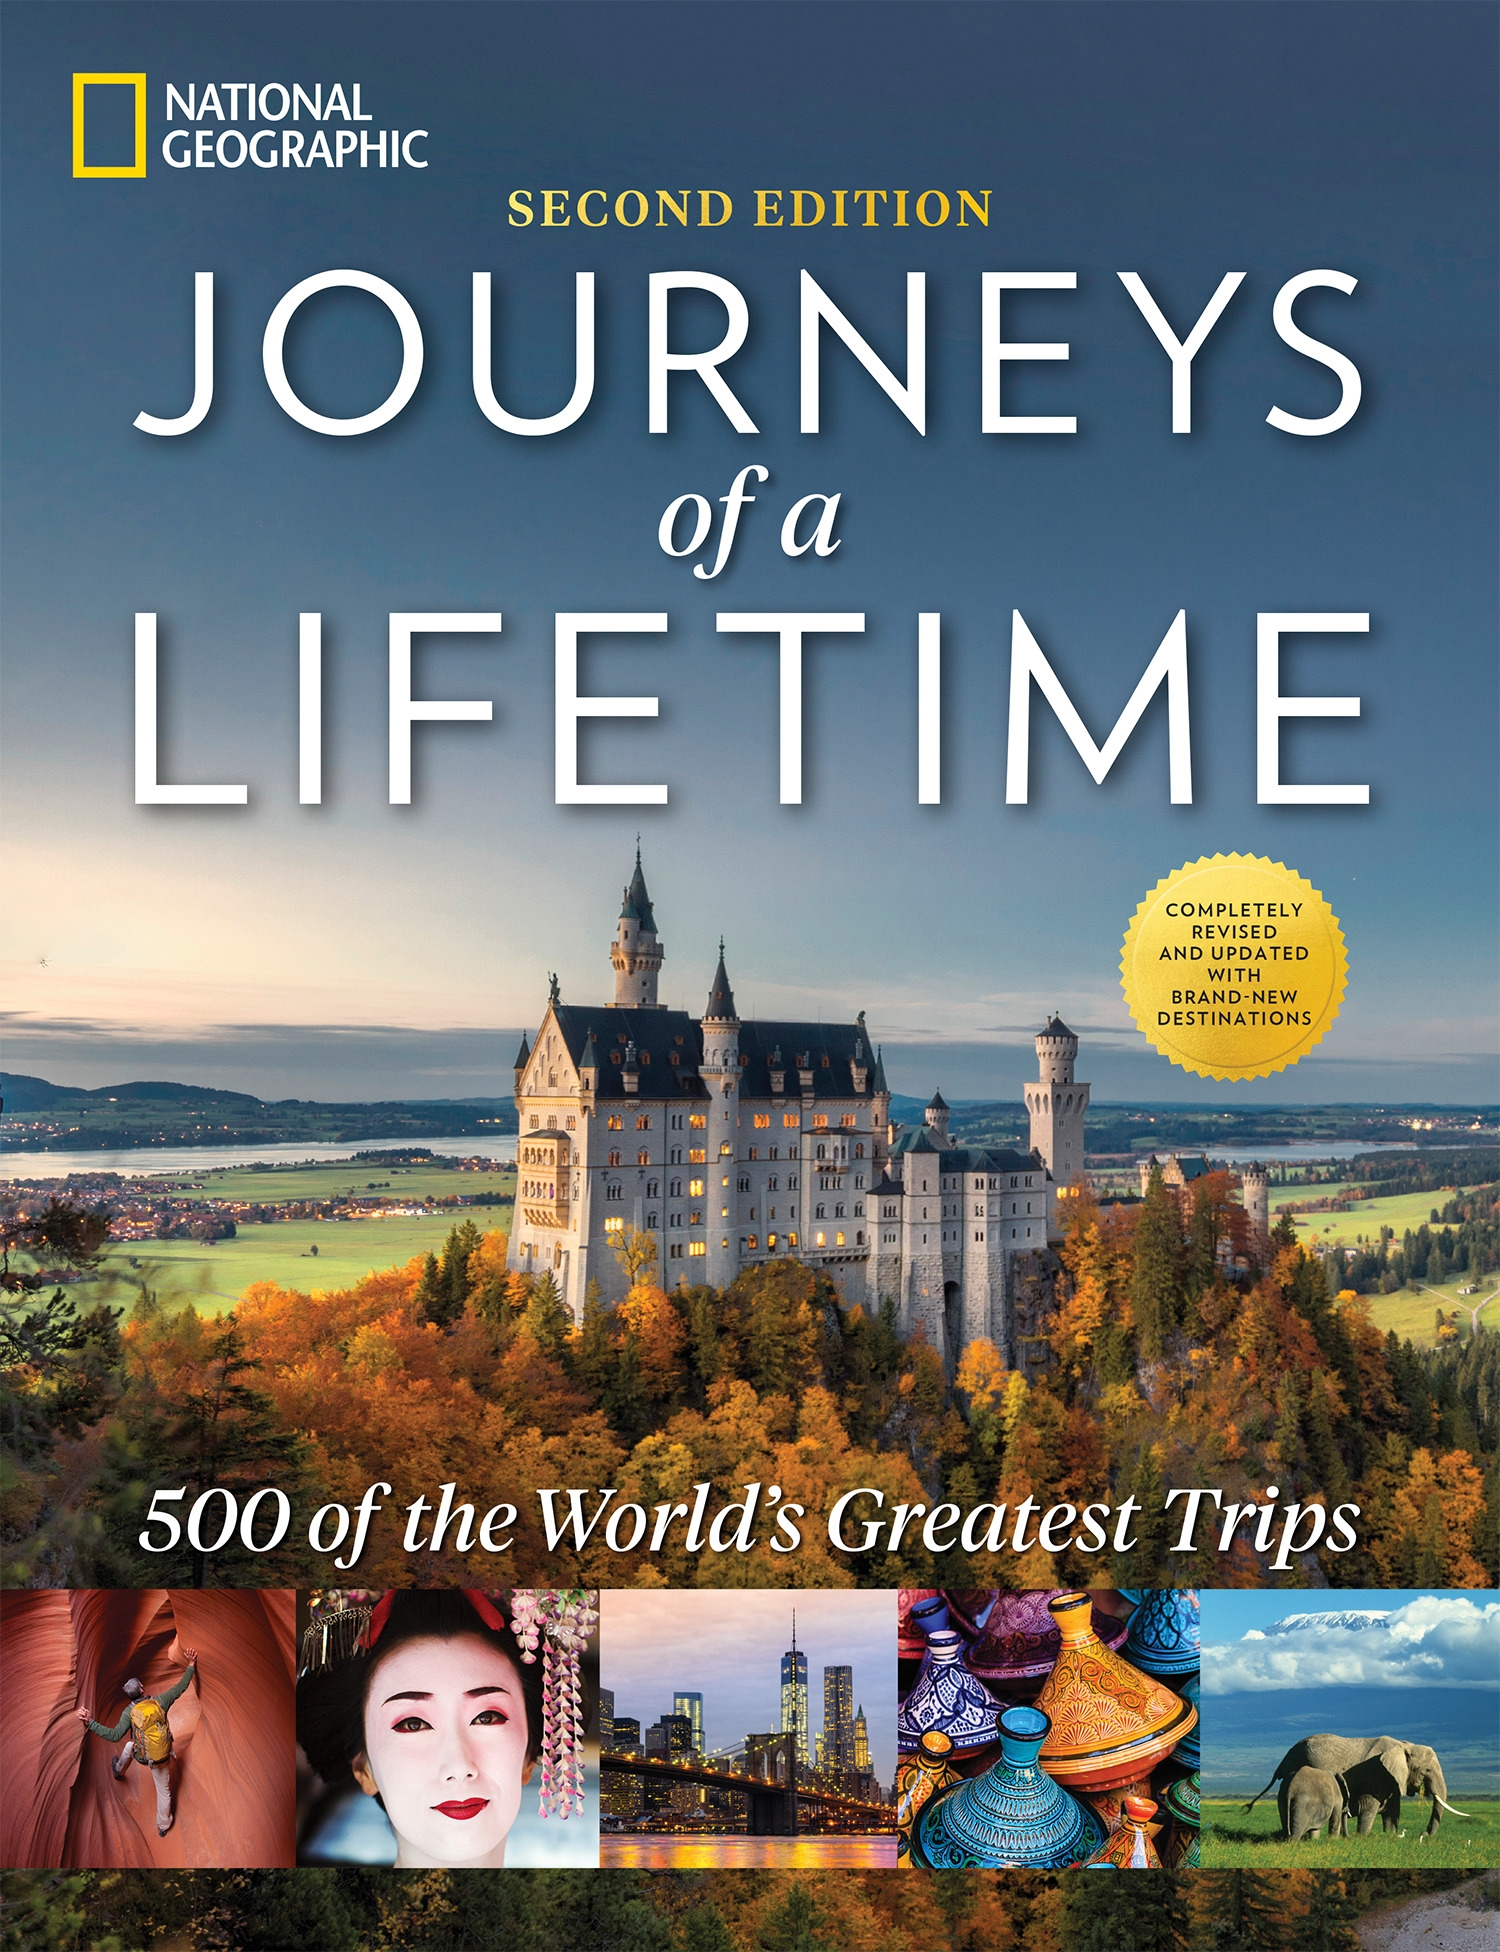 Journeys of a Lifetime, Second Edition: 500 of the World's Greatest Trips by National Geographic, ISBN: 9781426219733